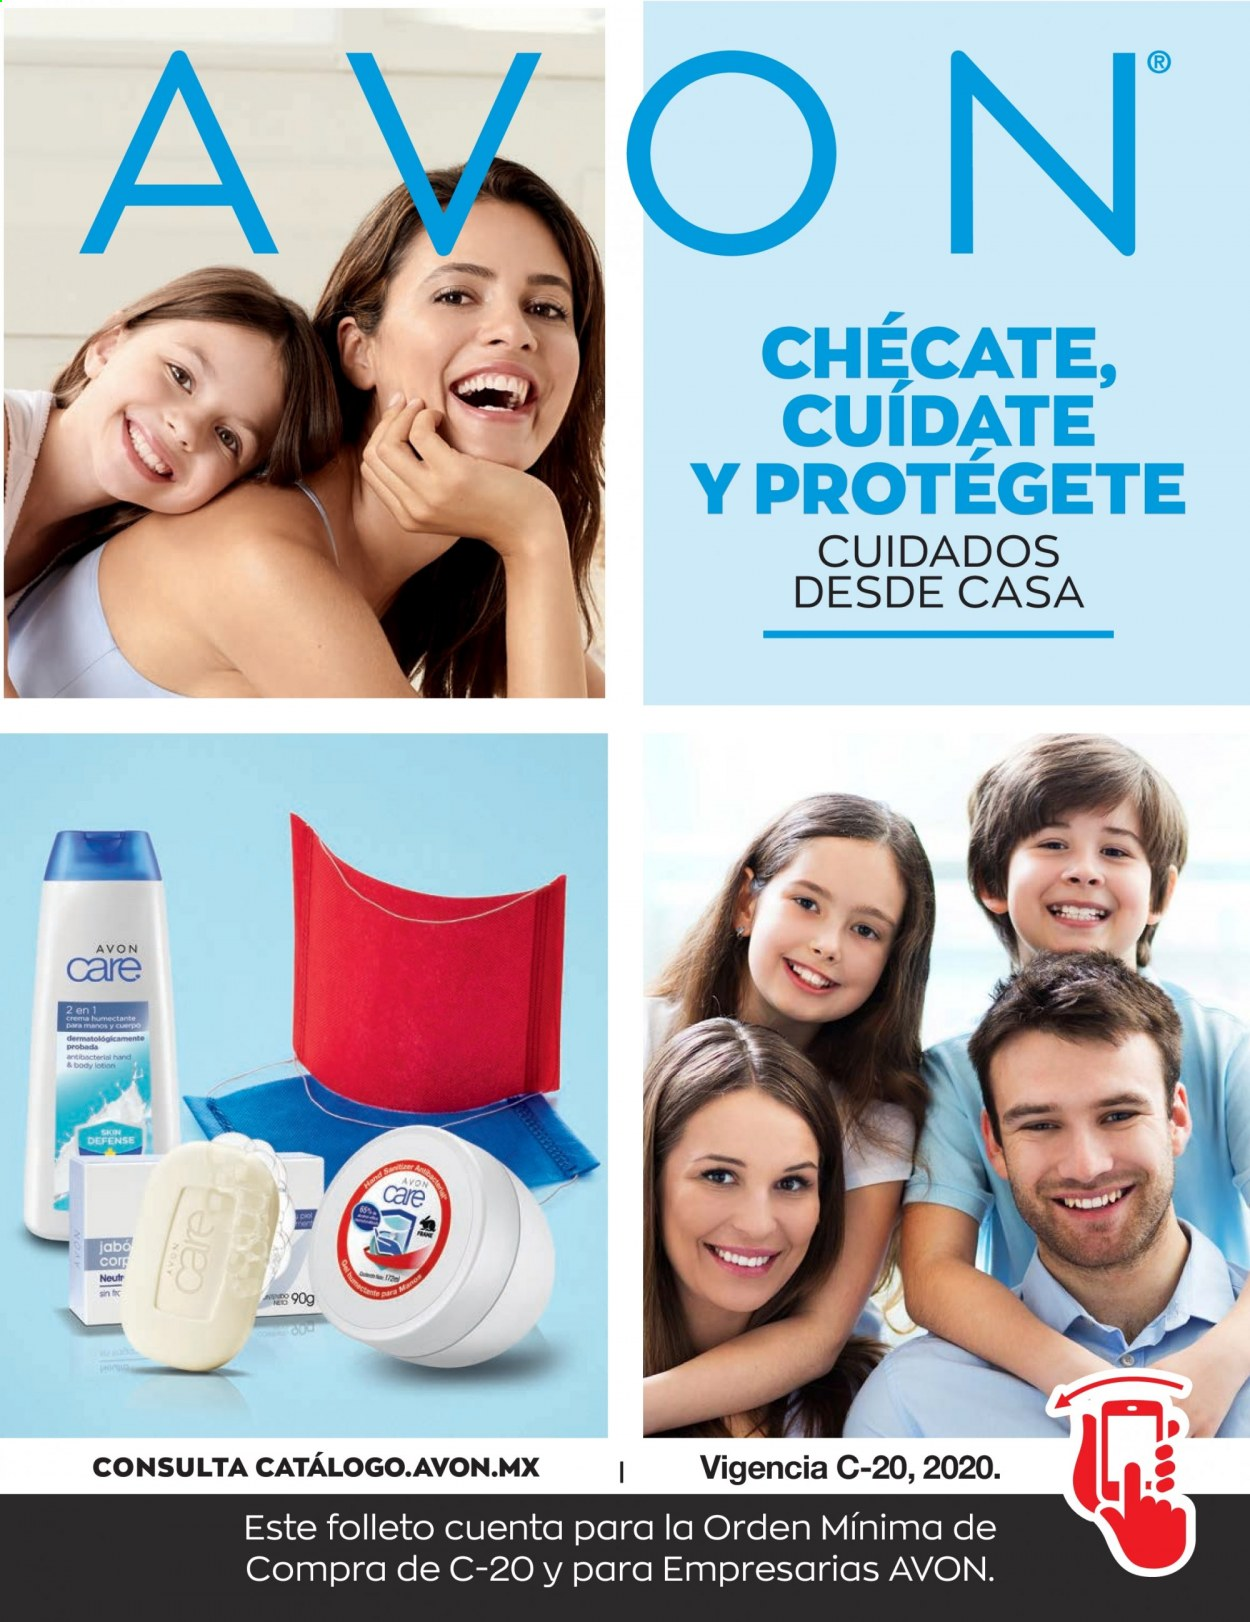 Folleto actual Avon - 7.11.2020 - 9.12.2020 - Ventas - body lotion, crema humectante. Página 1.